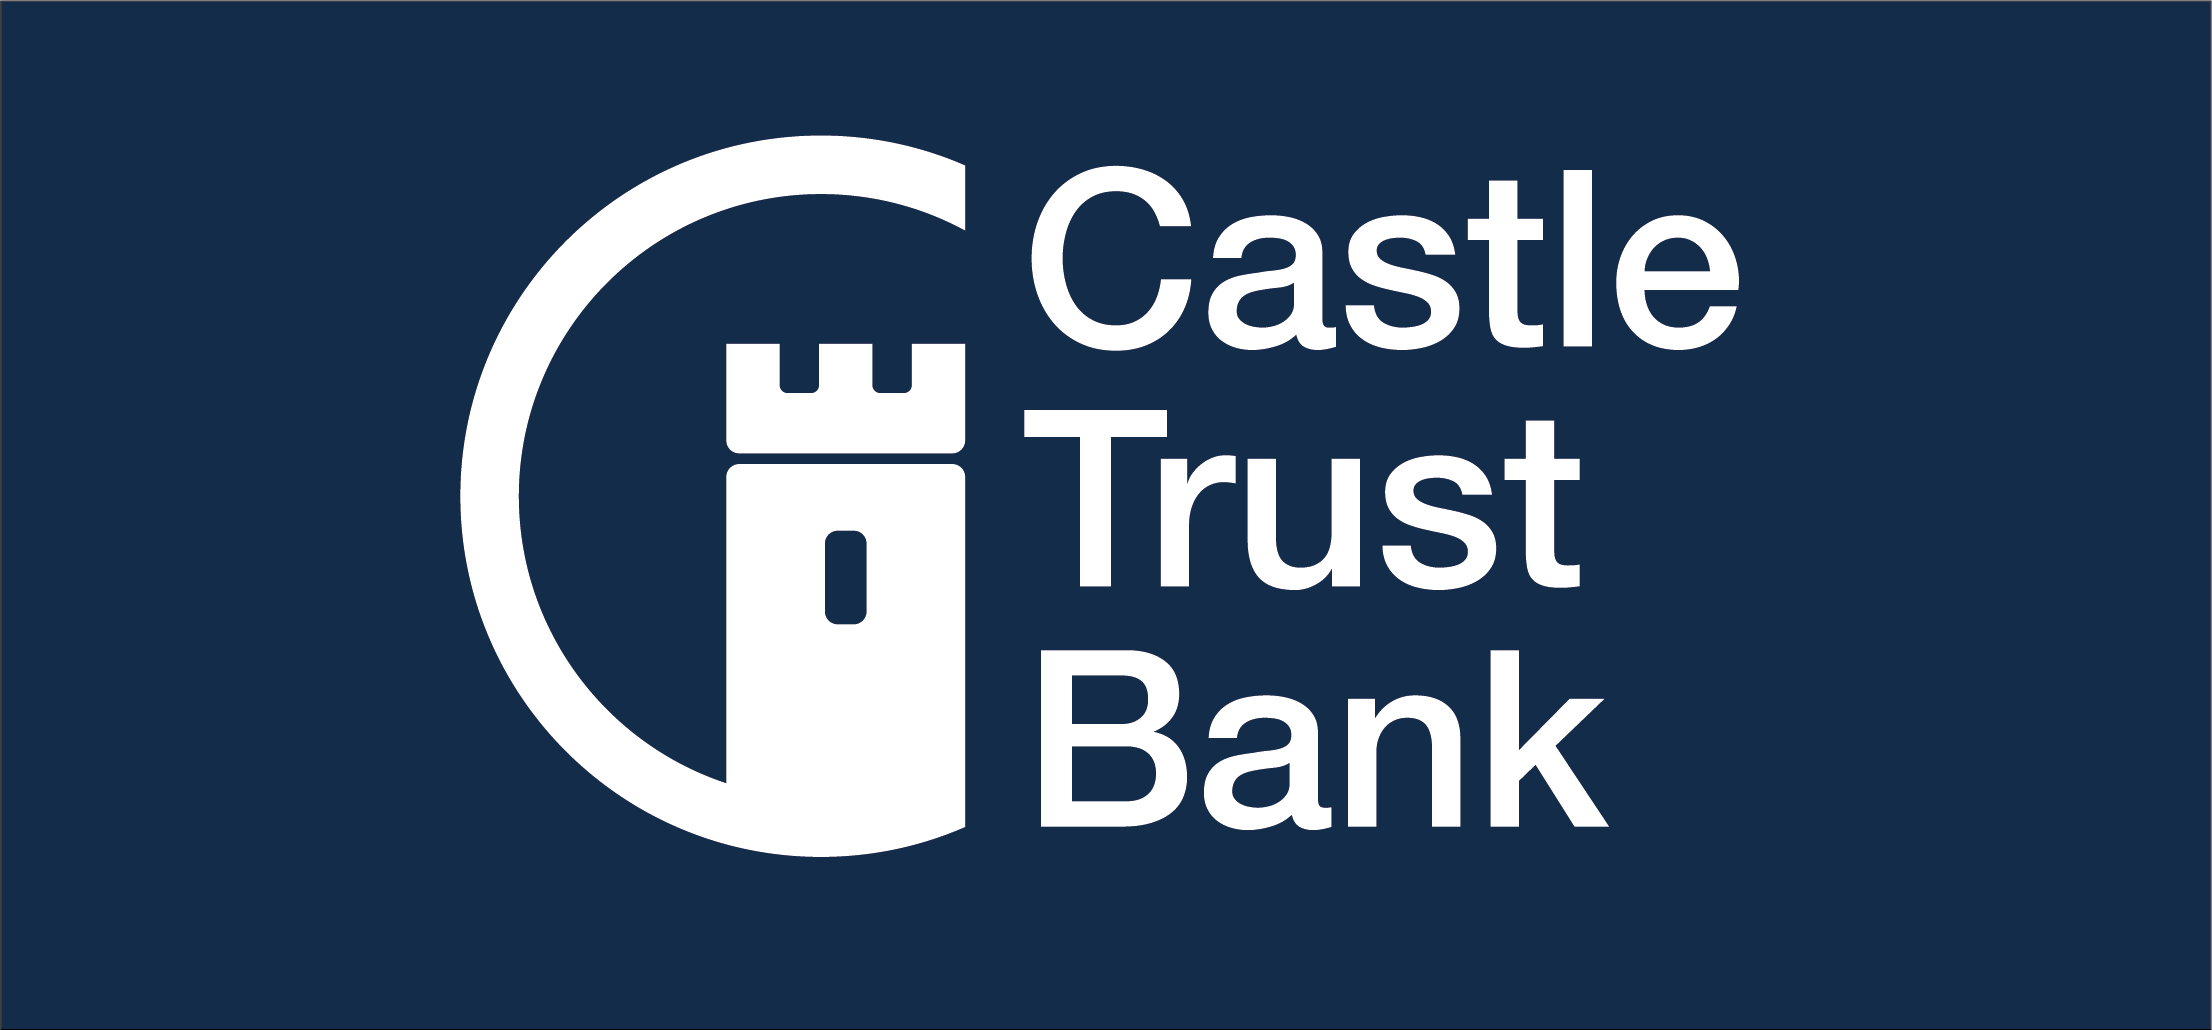 Castle Trust Bank logo